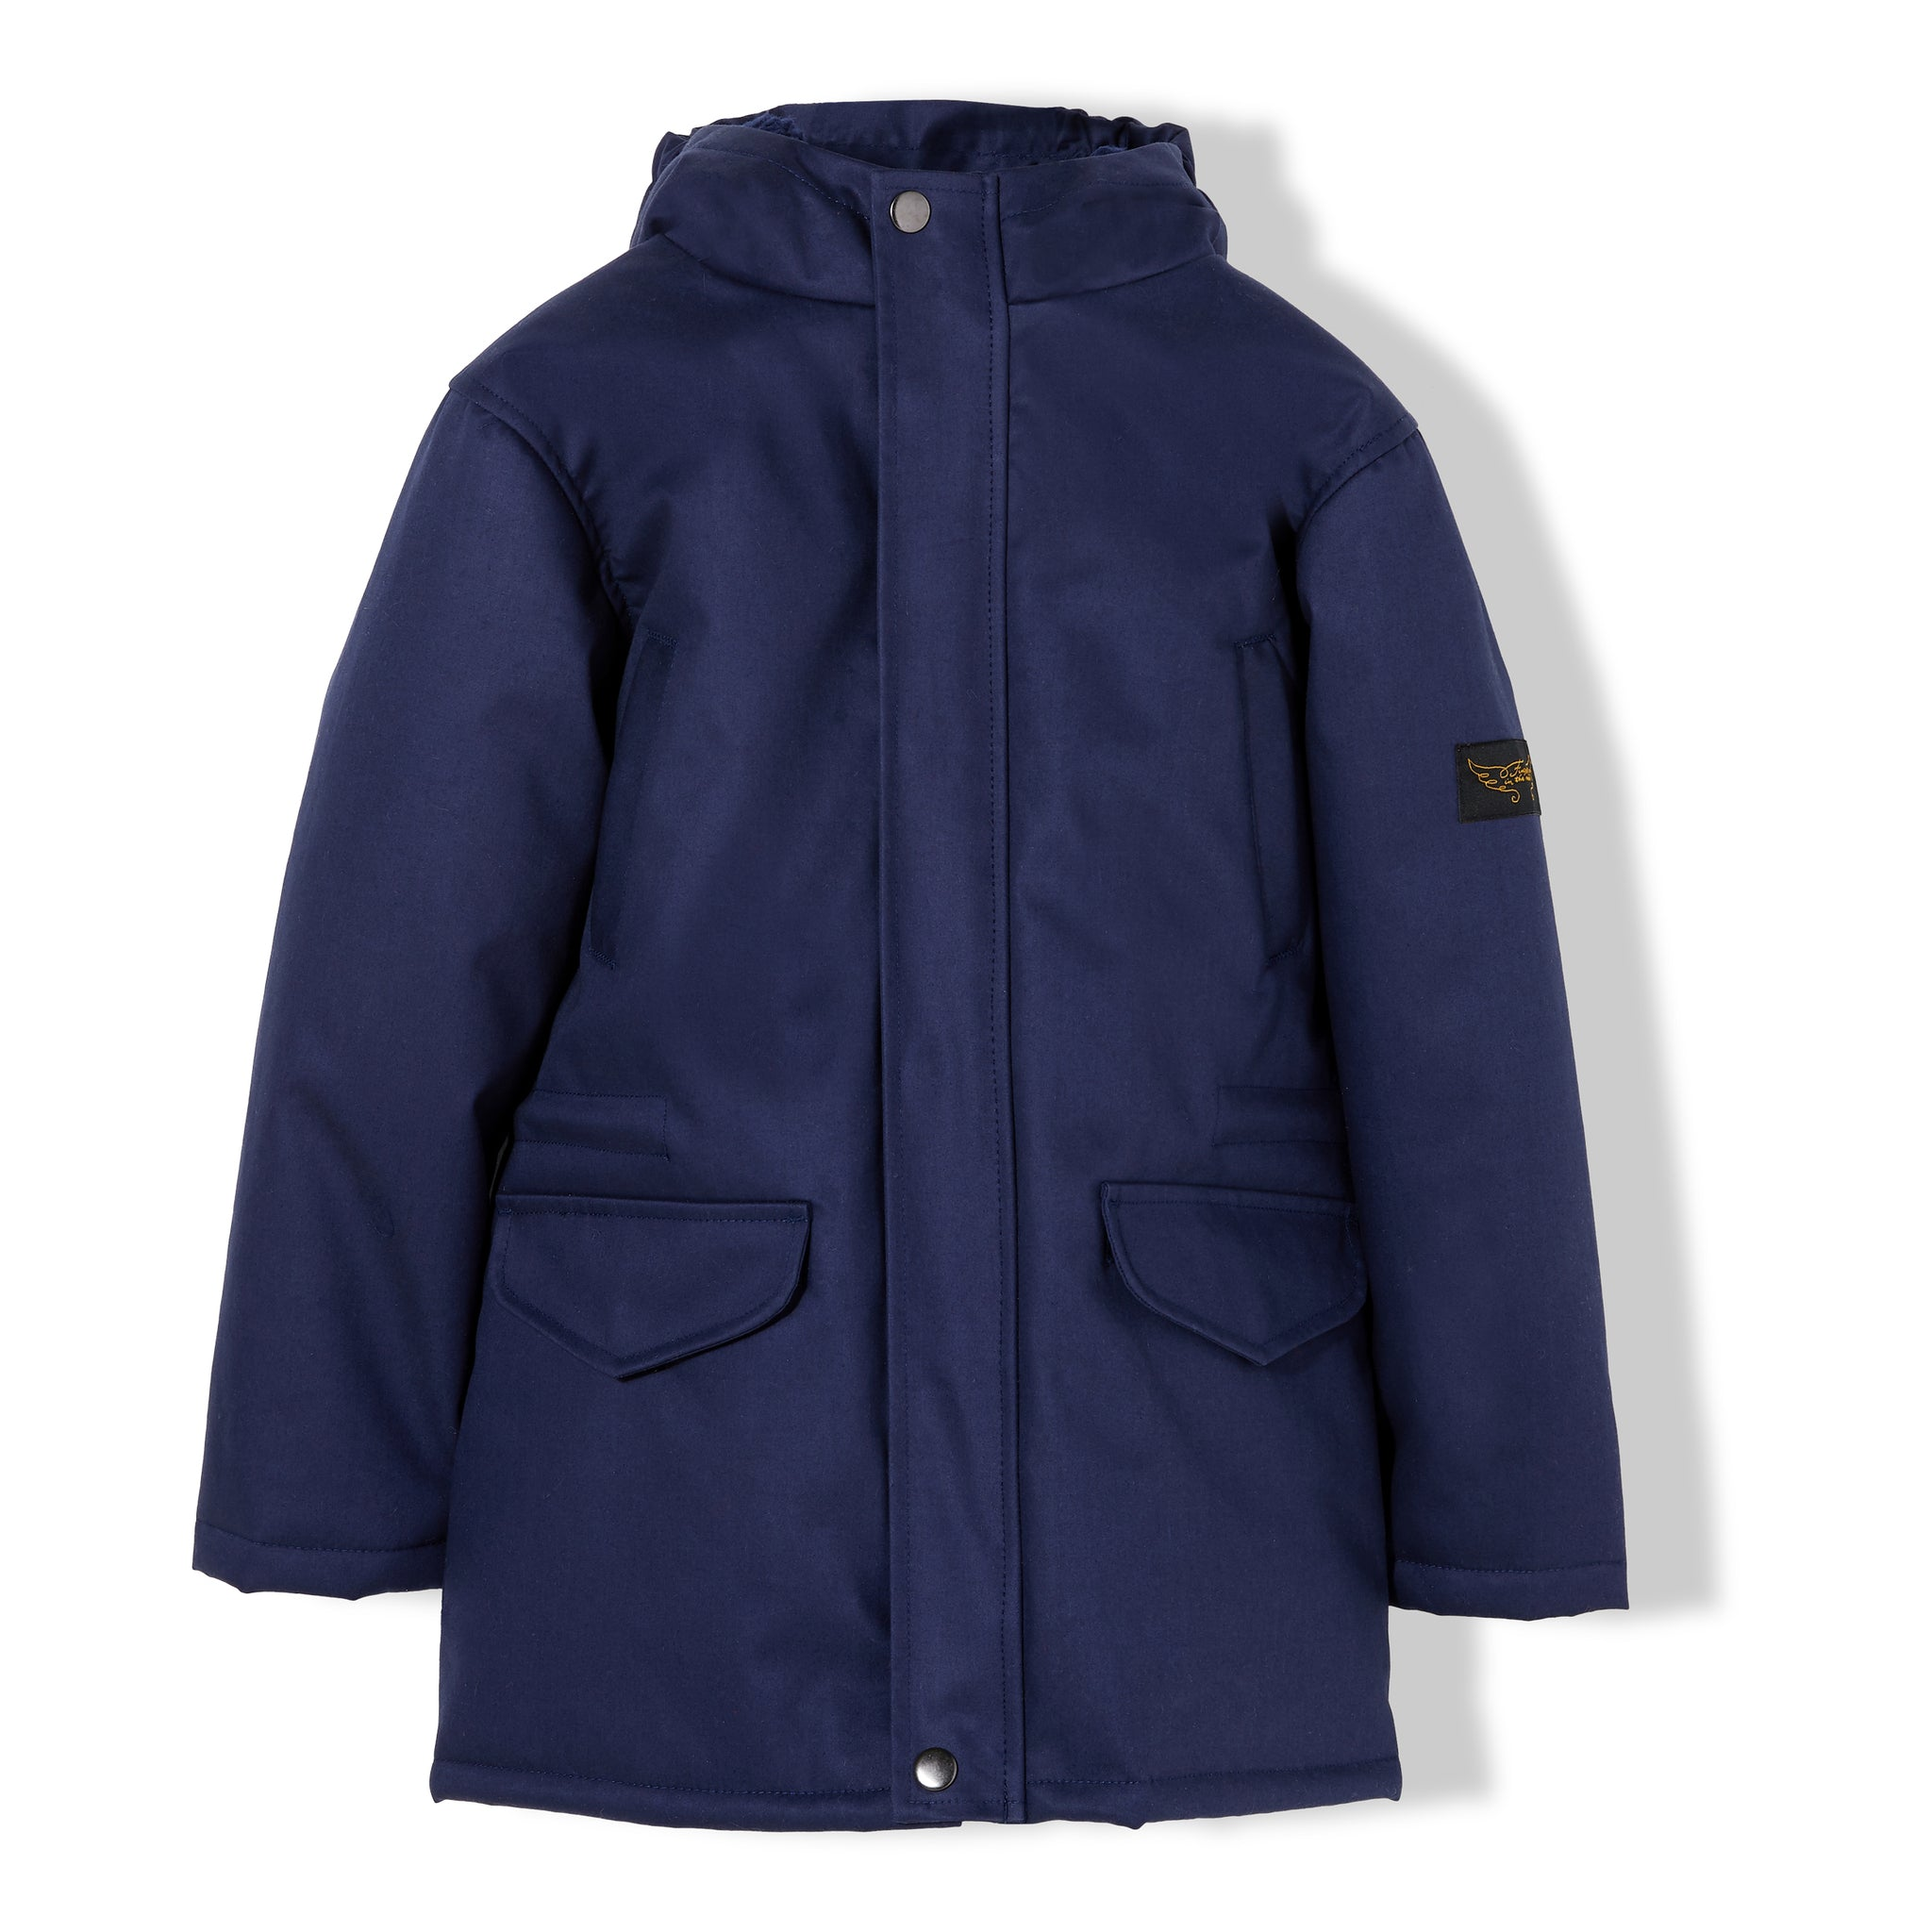 HALIFAX Navy - Military Parka 1